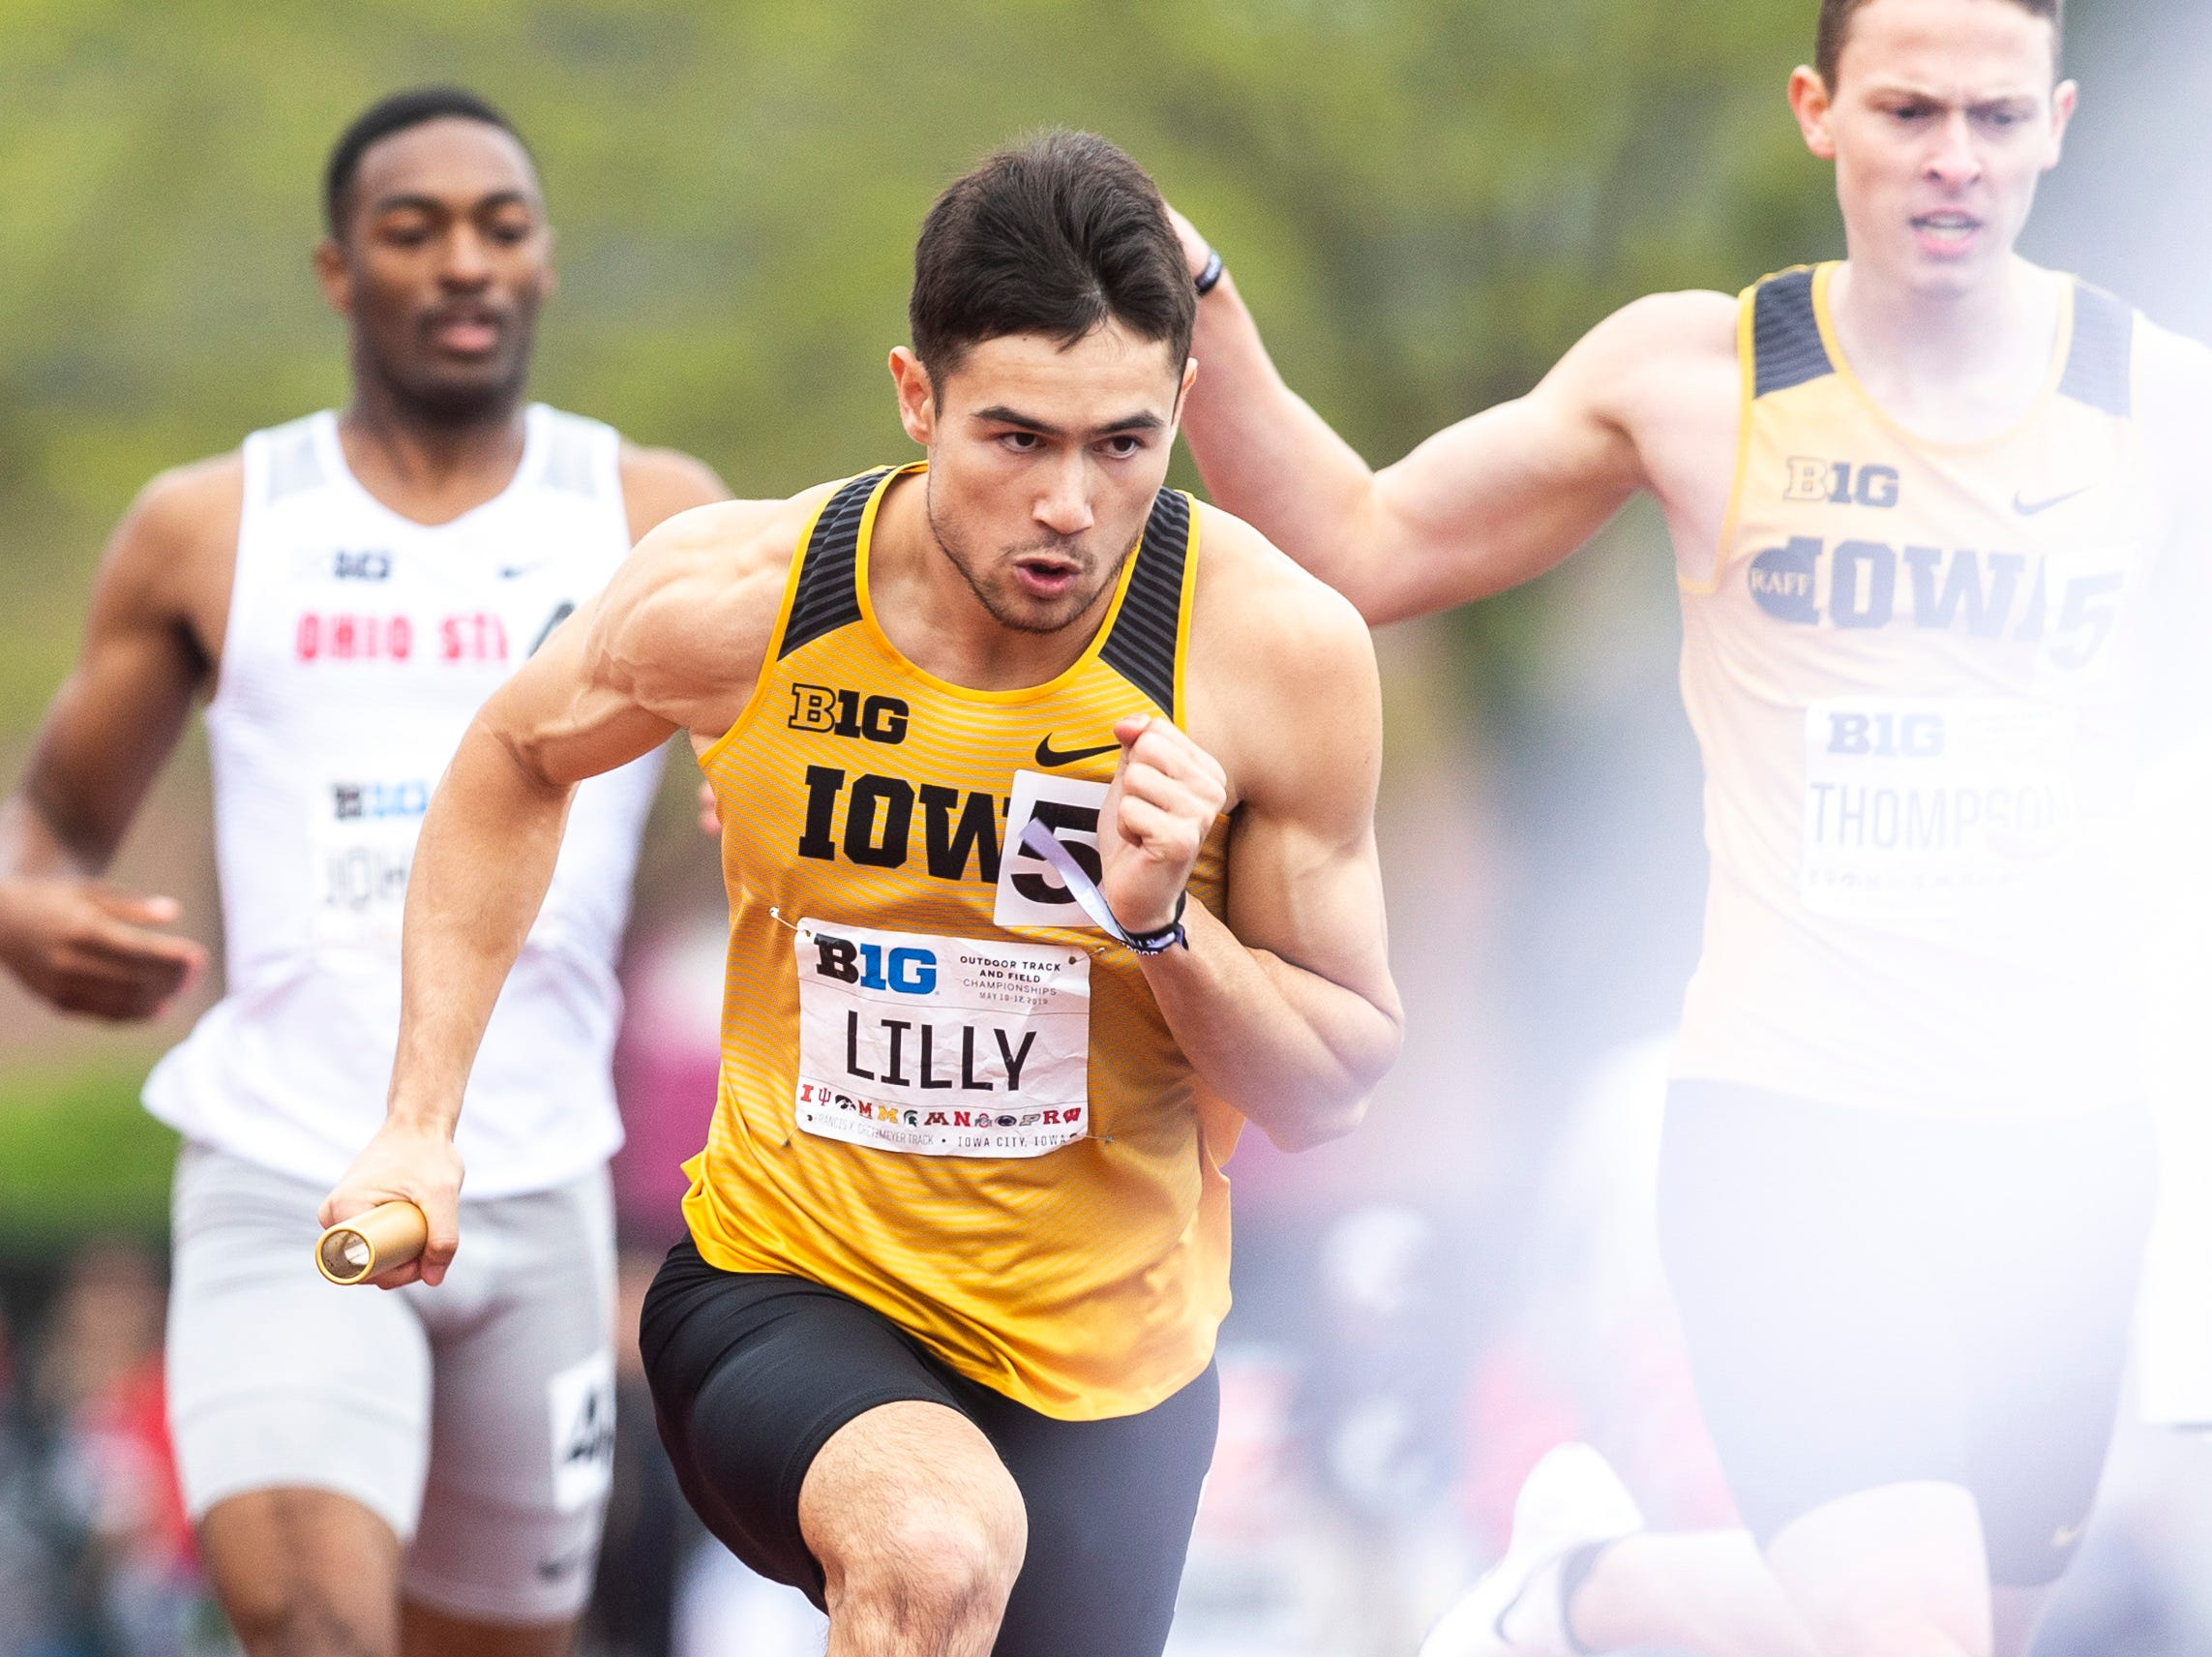 Iowa's Carter Lilly takes a handoff while competing in the 4x400 meter relay during the final day of Big Ten track and field outdoor championships, Sunday, May 12, 2019, at Francis X. Cretzmeyer Track on the University of Iowa campus in Iowa City, Iowa. The Hawkeyes won, with a time of 3:07.36.